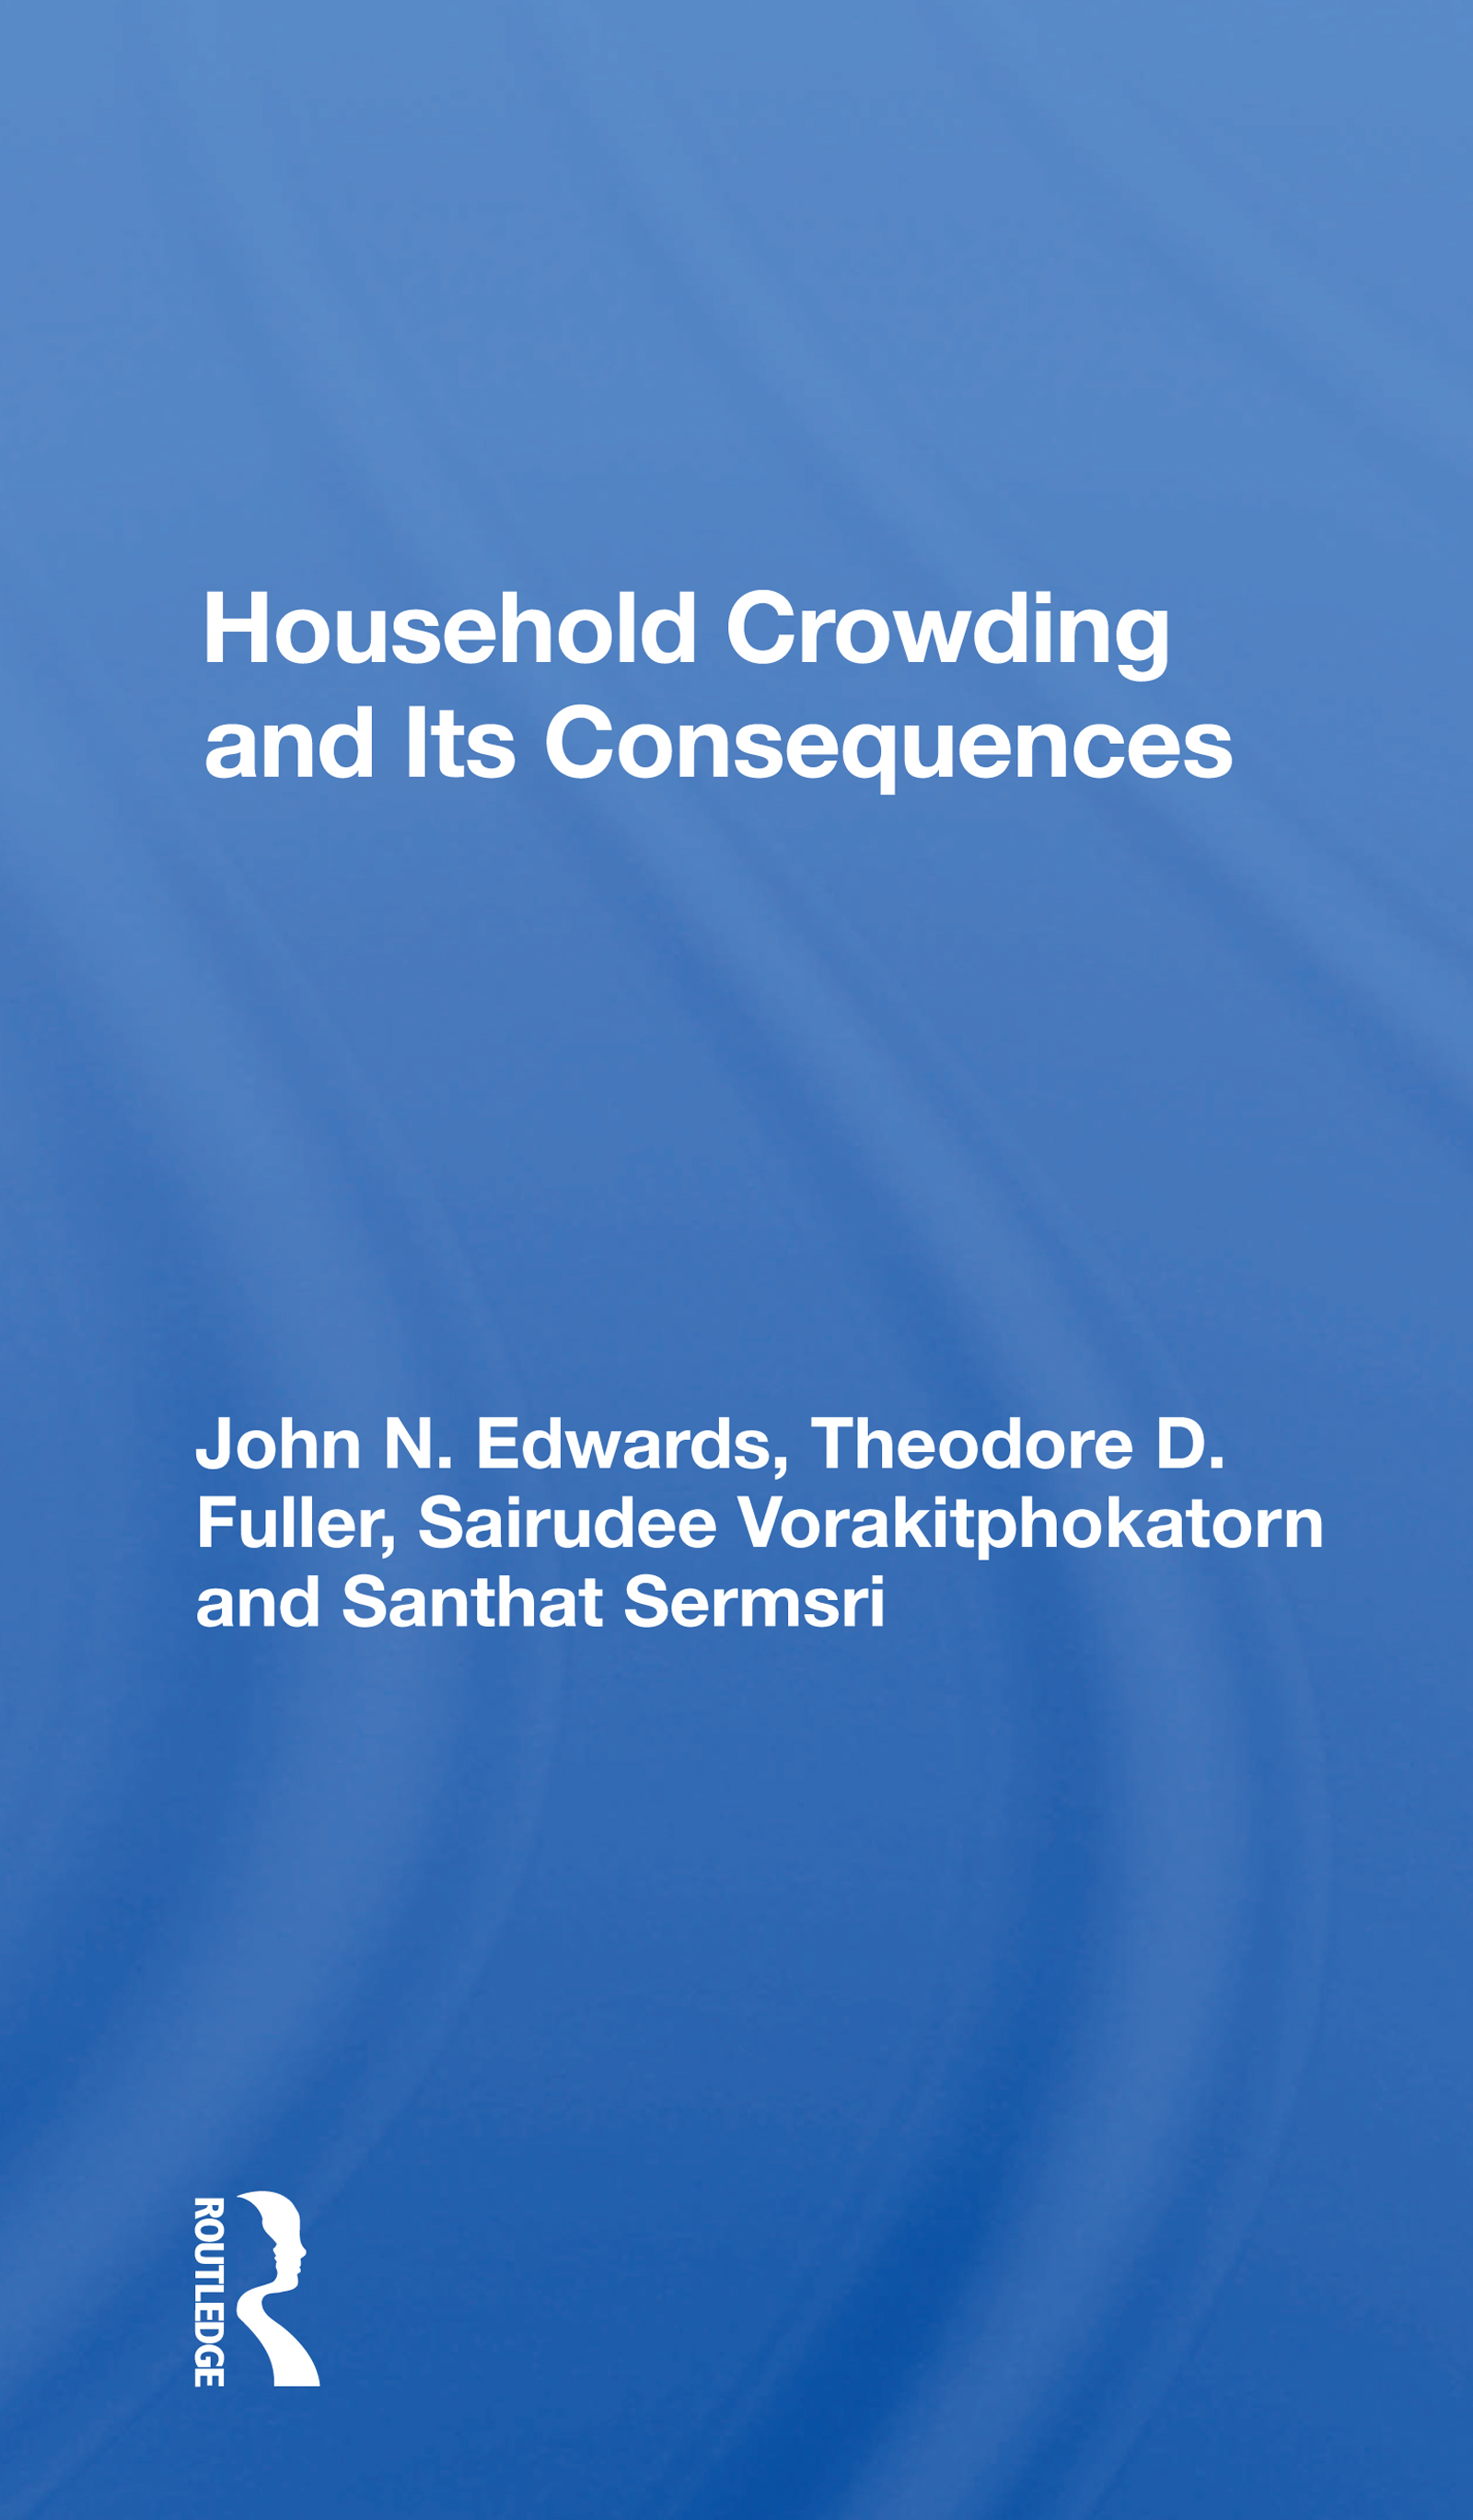 Household Crowding and Its Consequences